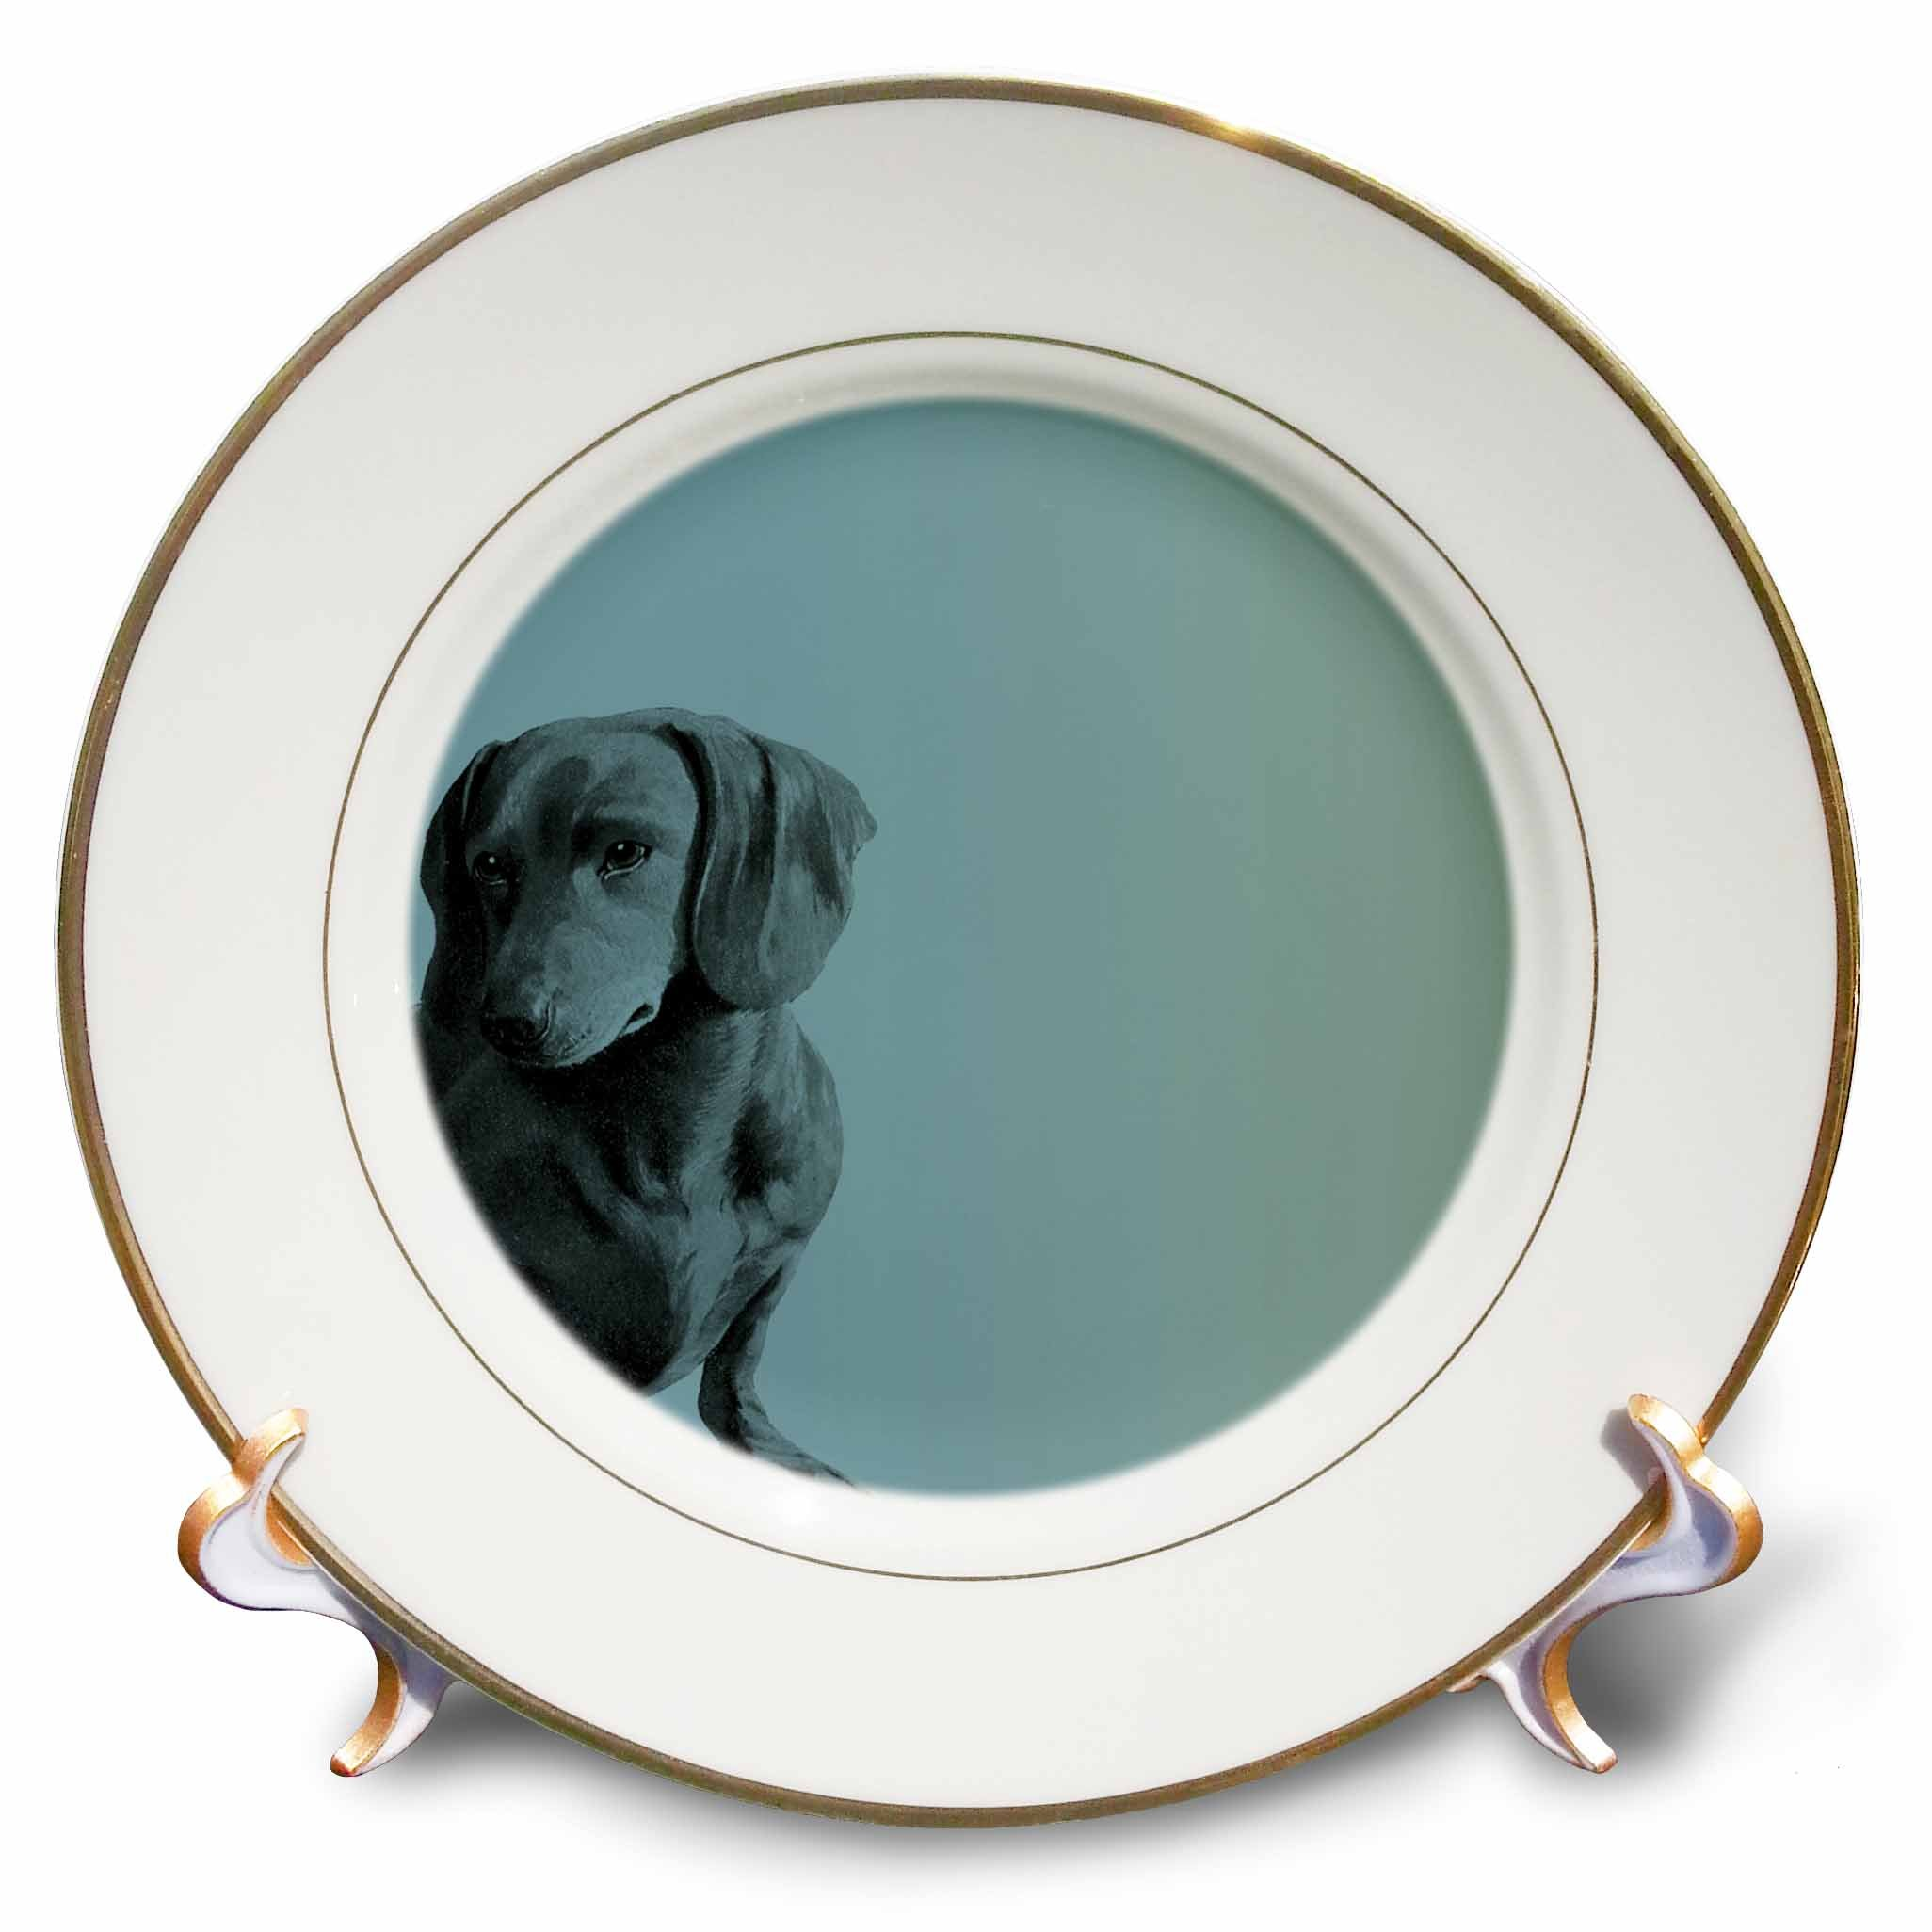 3dRose cp_130560_1 Adorable Daschund Dog Pets Animals-Porcelain Plate, 8-Inch